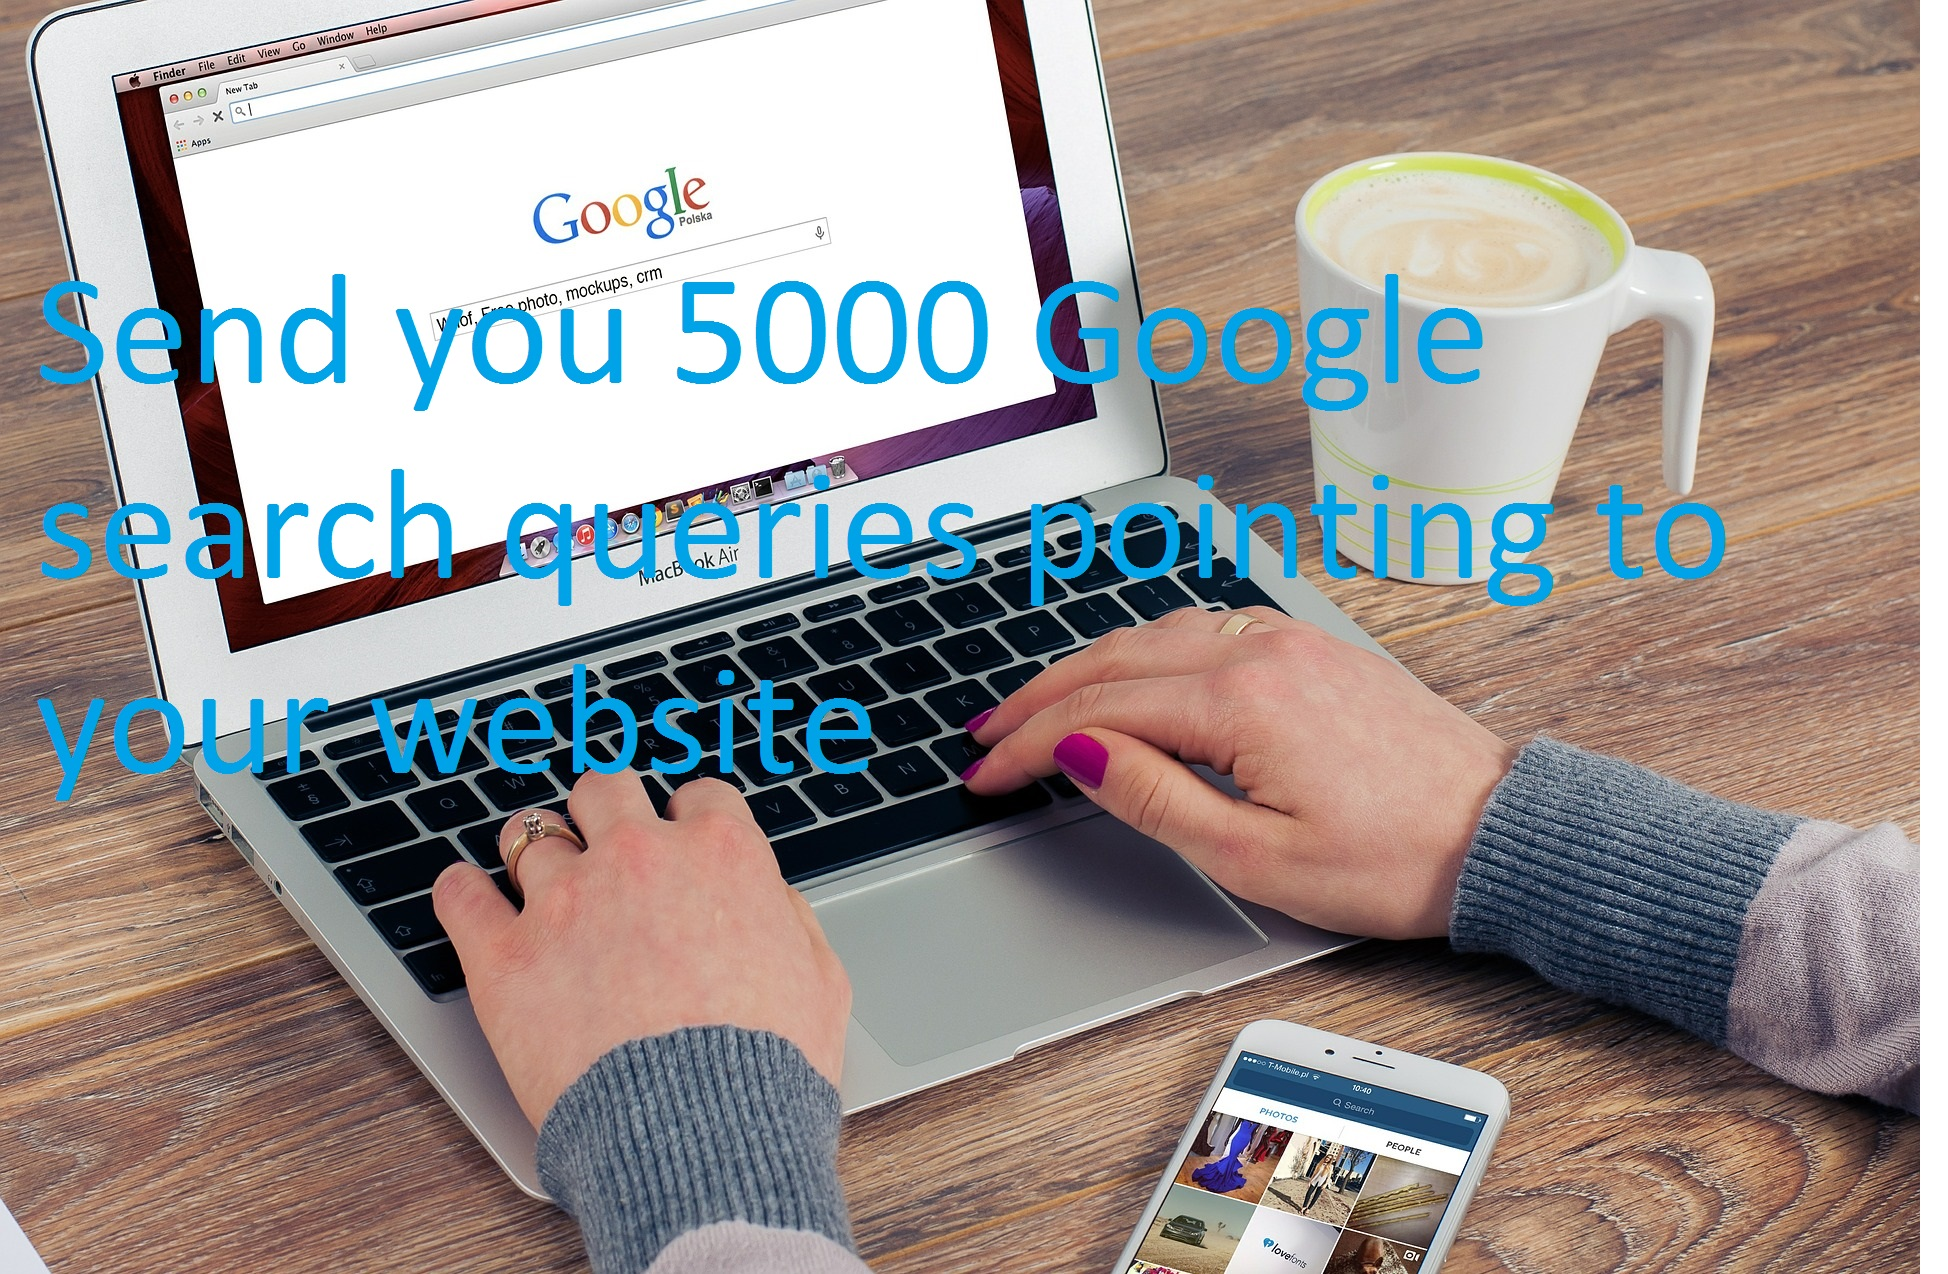 Send you 5000 Google search queries pointing to your website